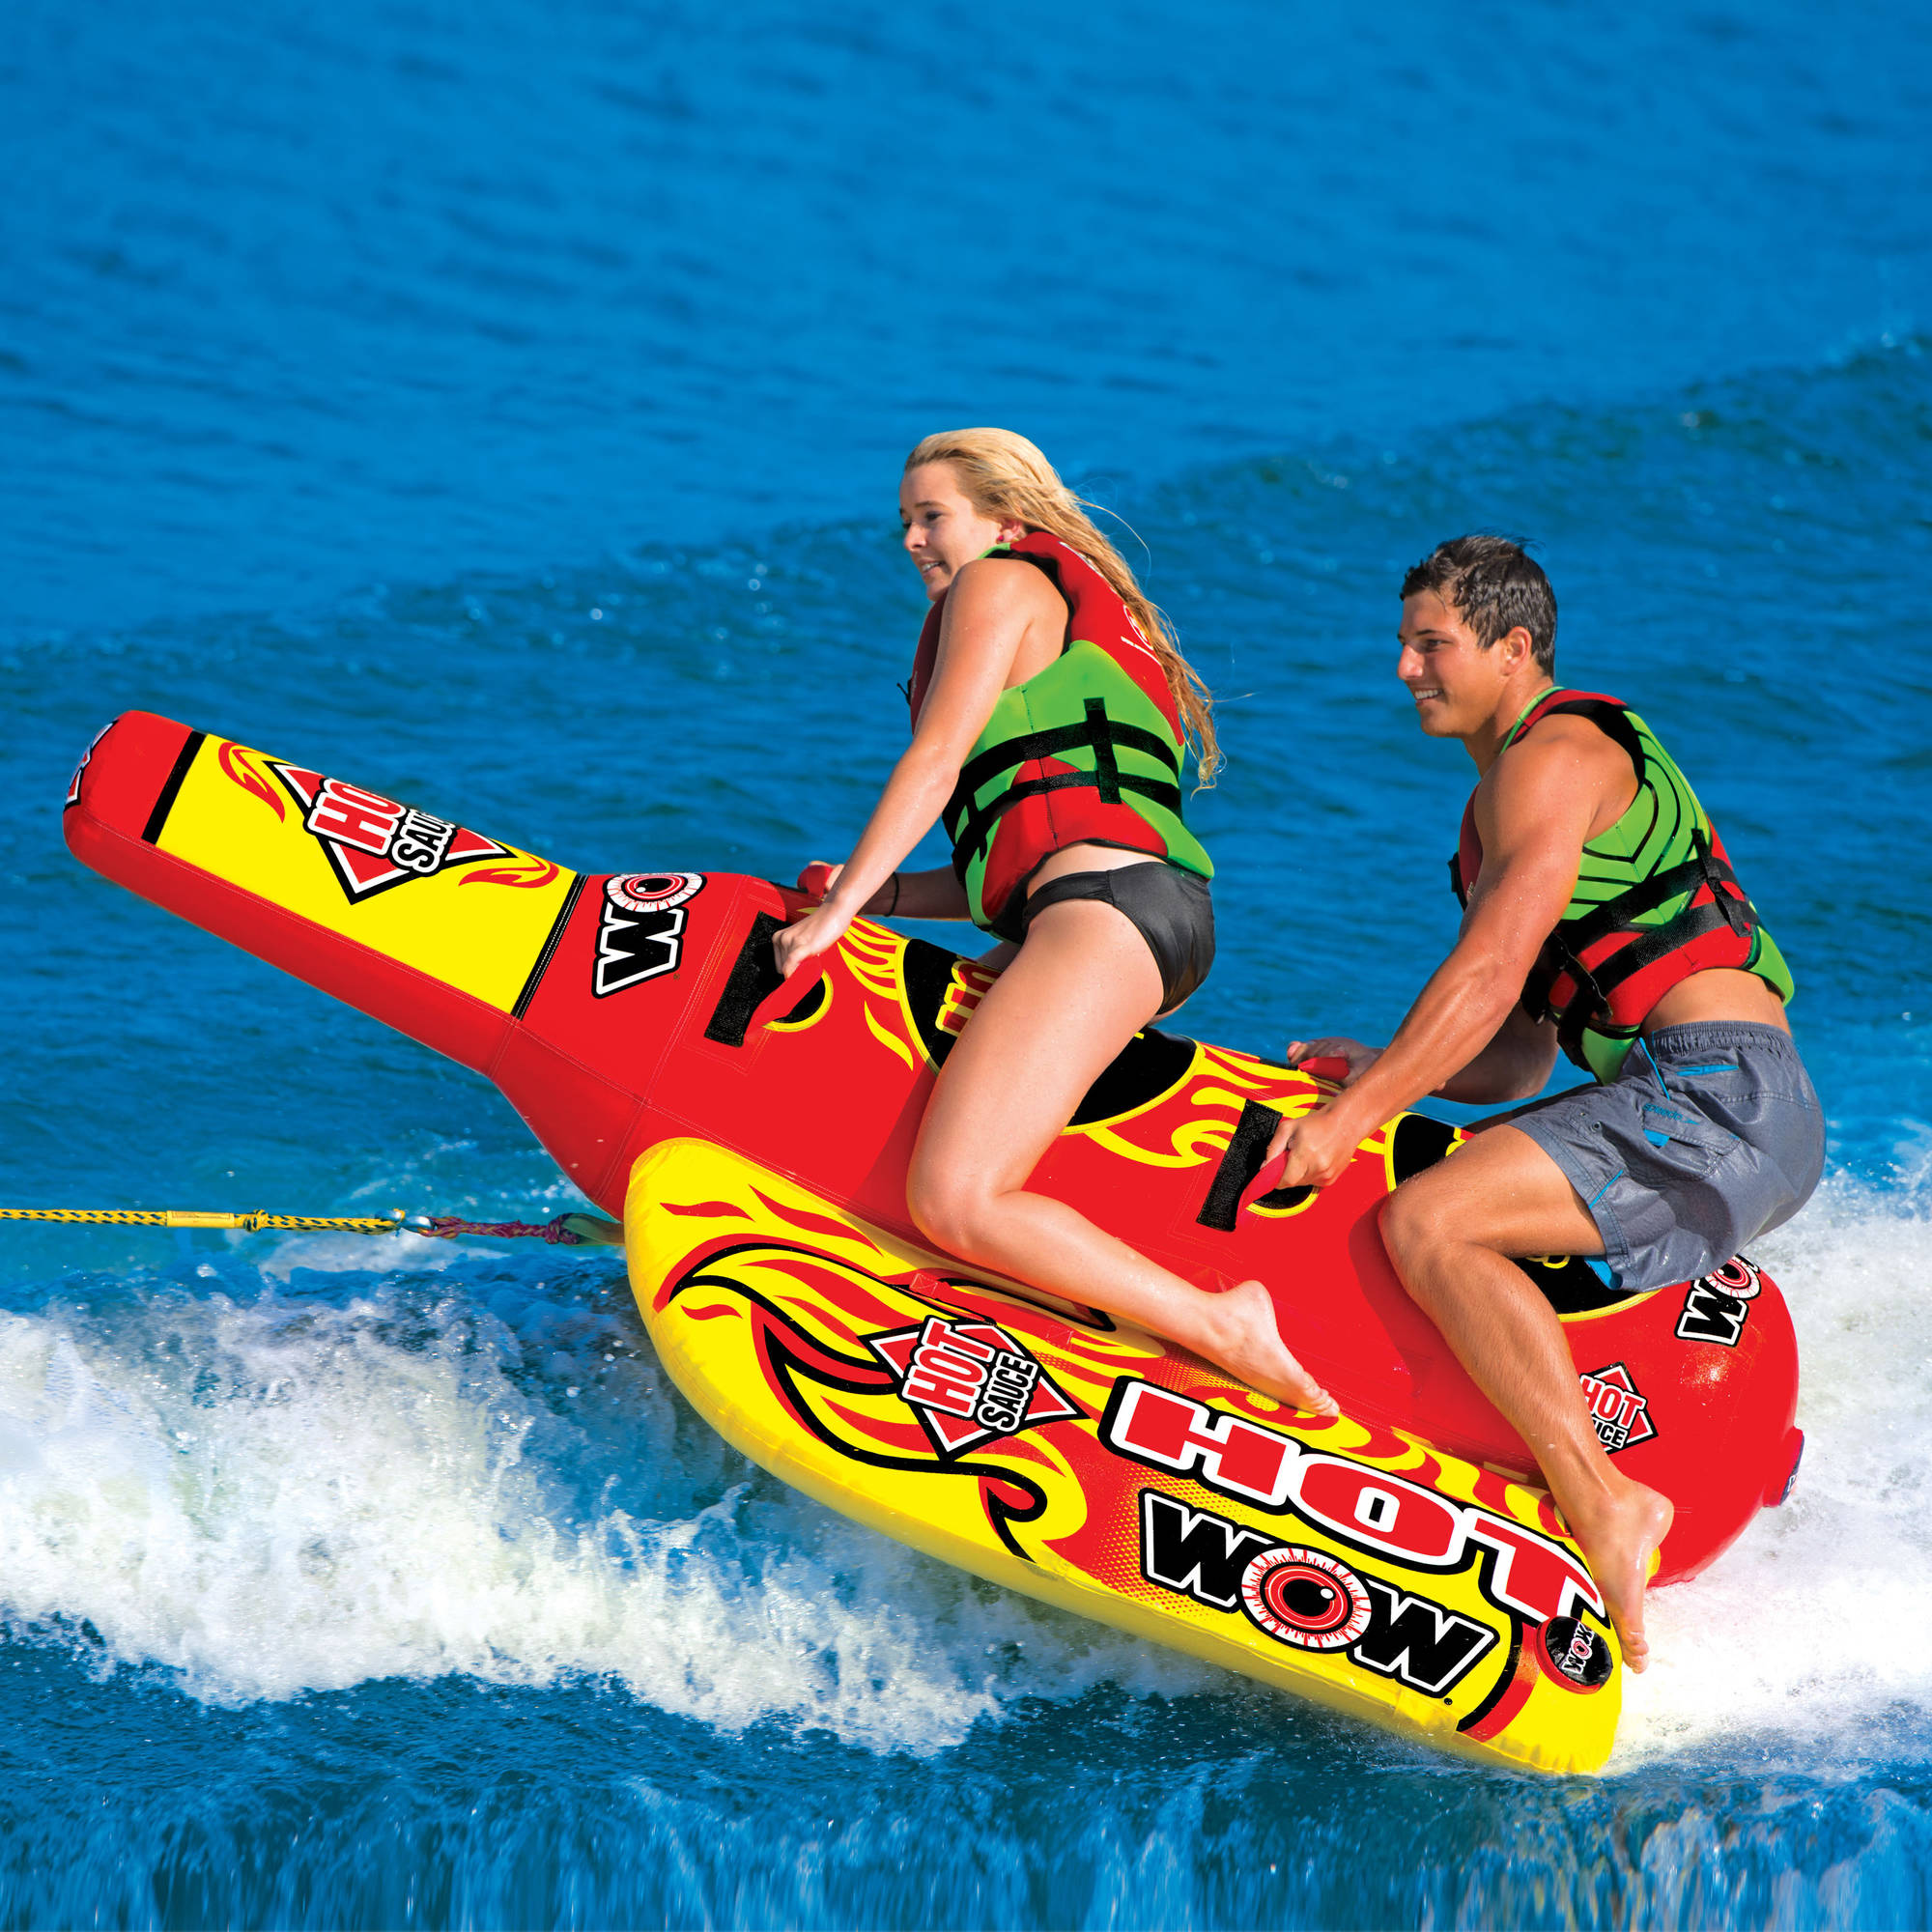 WOW Hot Sauce 1-2 Person Towable with Custom-Shaped Pontoons